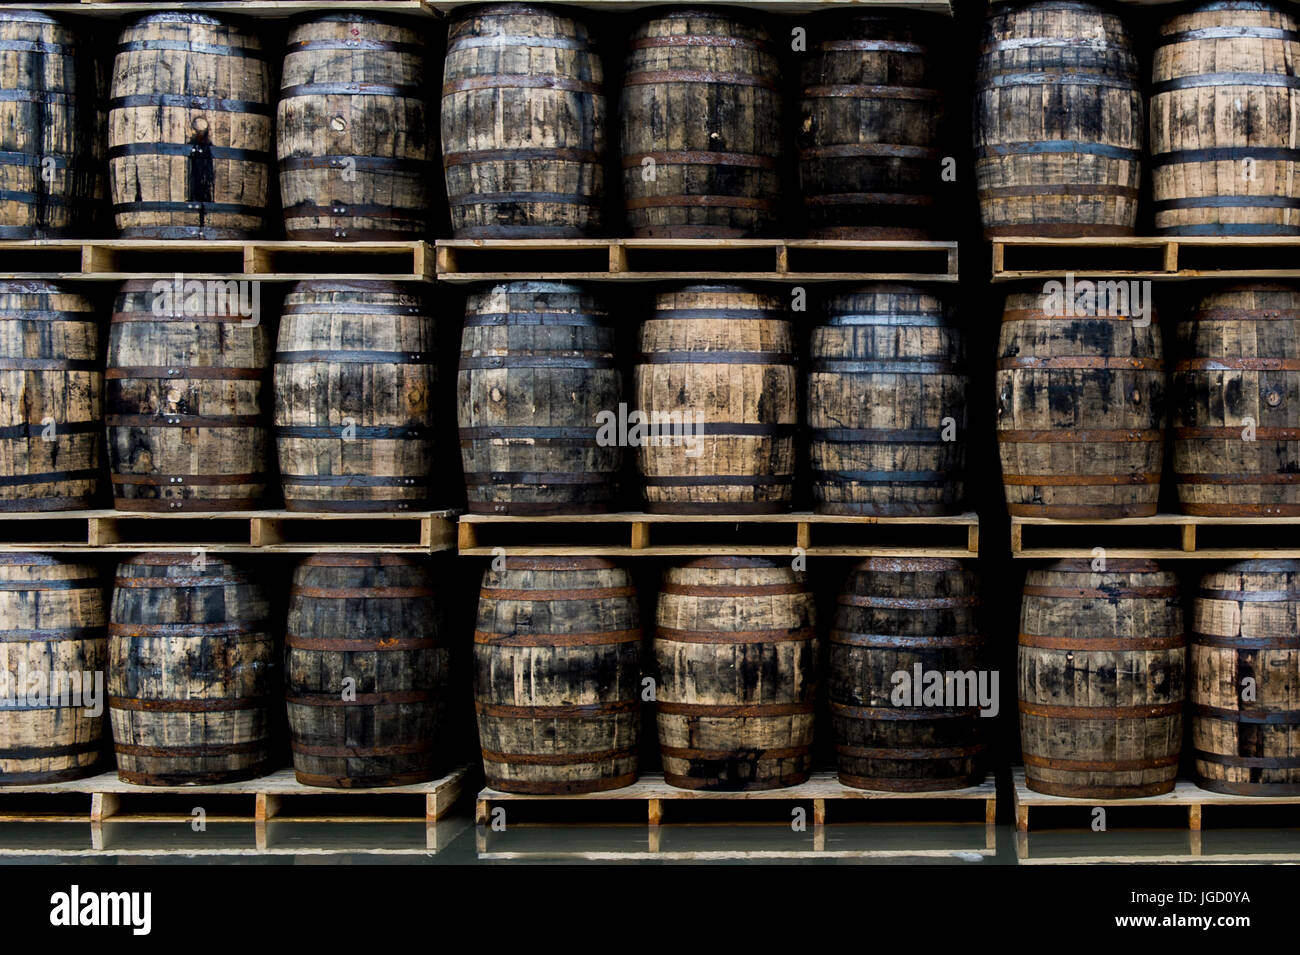 barrels-of-whiskey-in-a-distillery-in-we